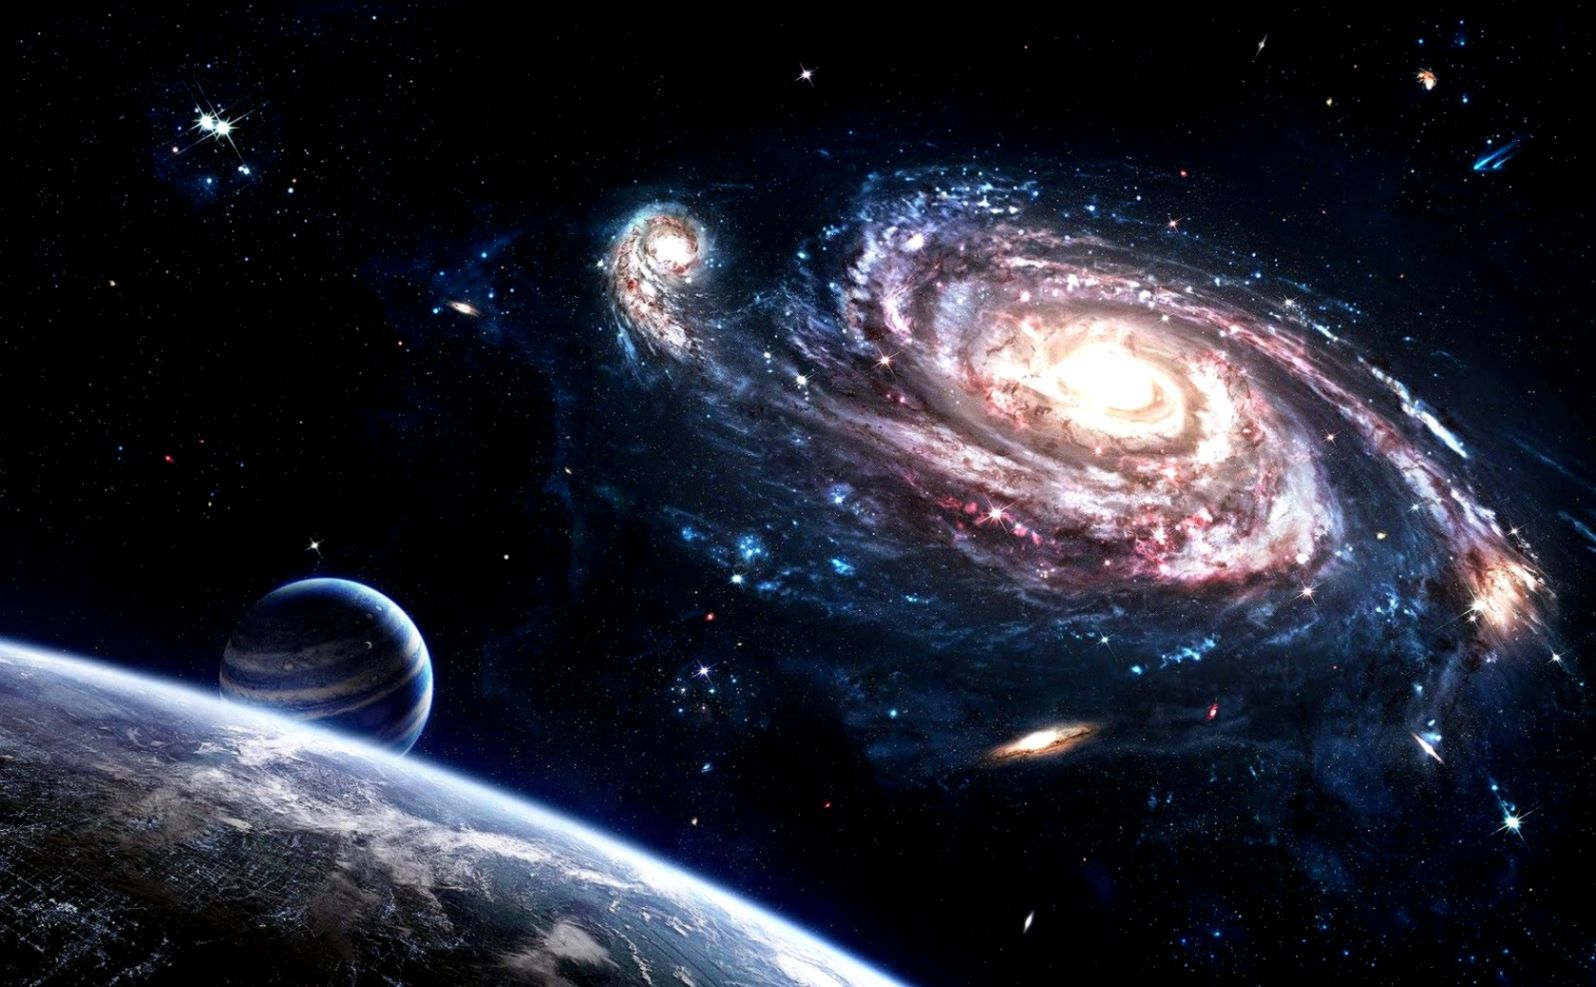 Pictures of Outer Space Planets and Galaxies